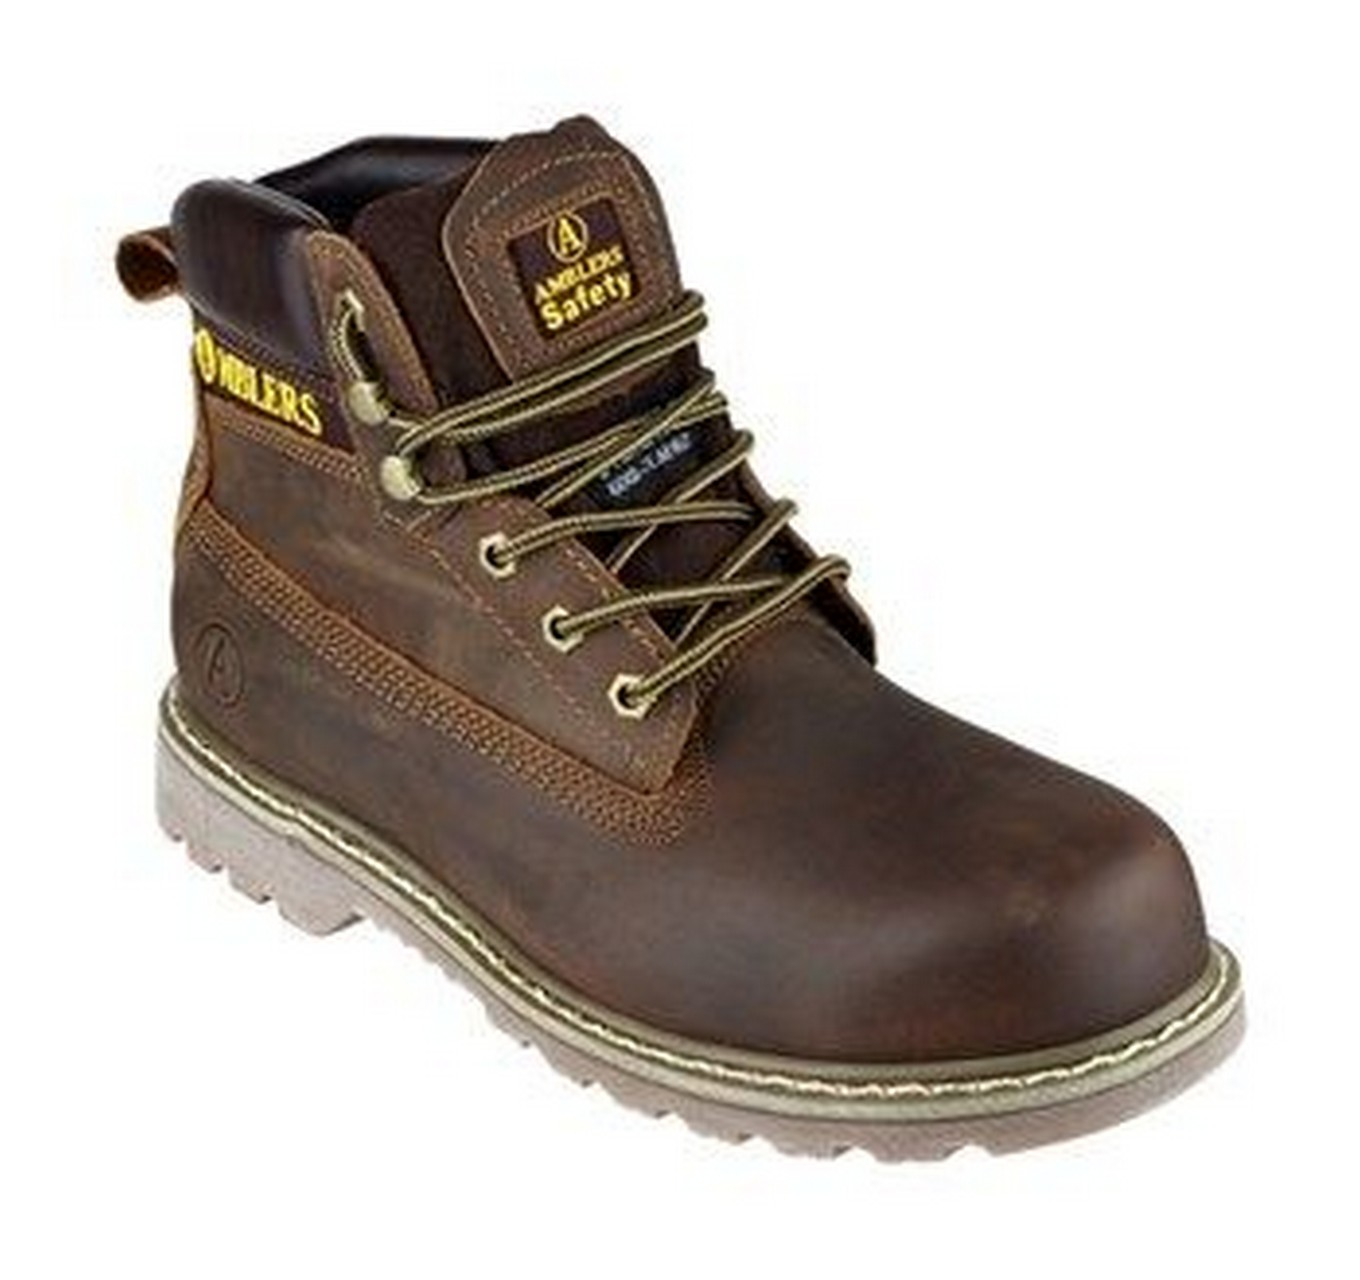 Safety Boot Amblers Fs164 8